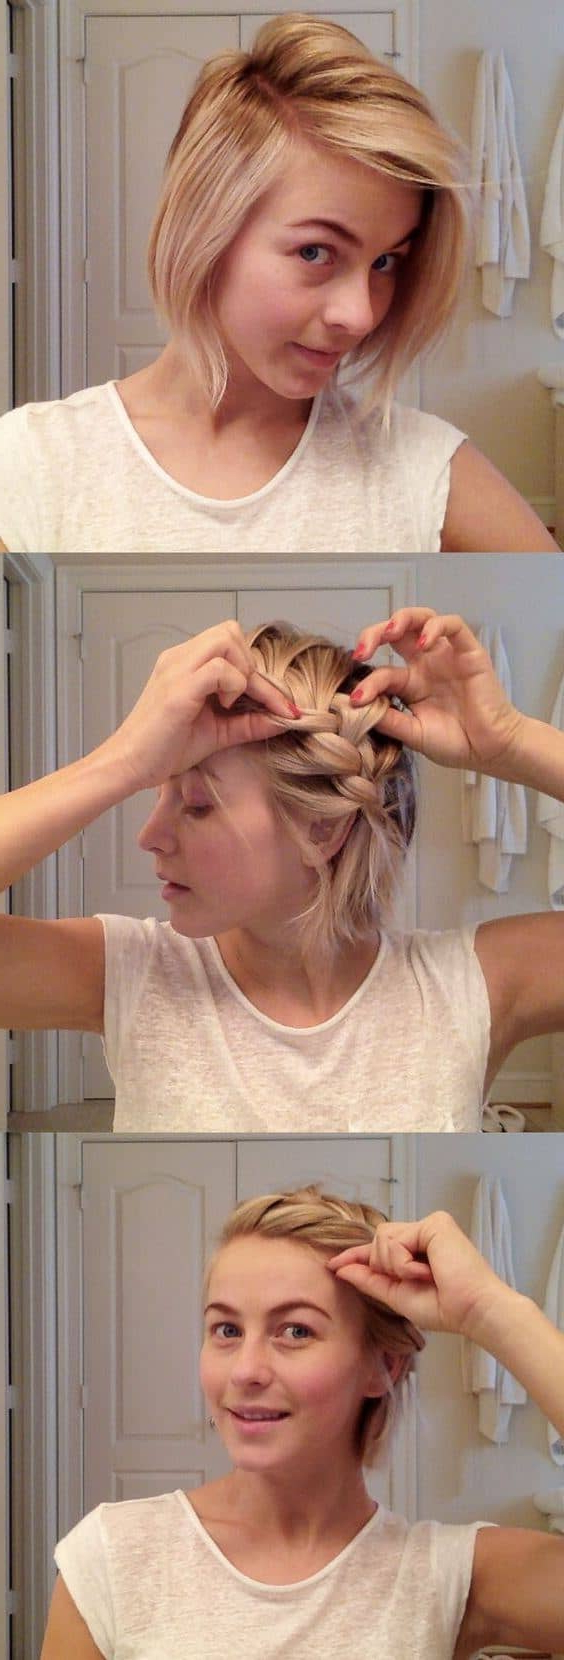 2020 Long And Short Bob Braid Hairstyles Throughout 27 Braid Hairstyles For Short Hair That Are Simply Gorgeous (View 2 of 20)